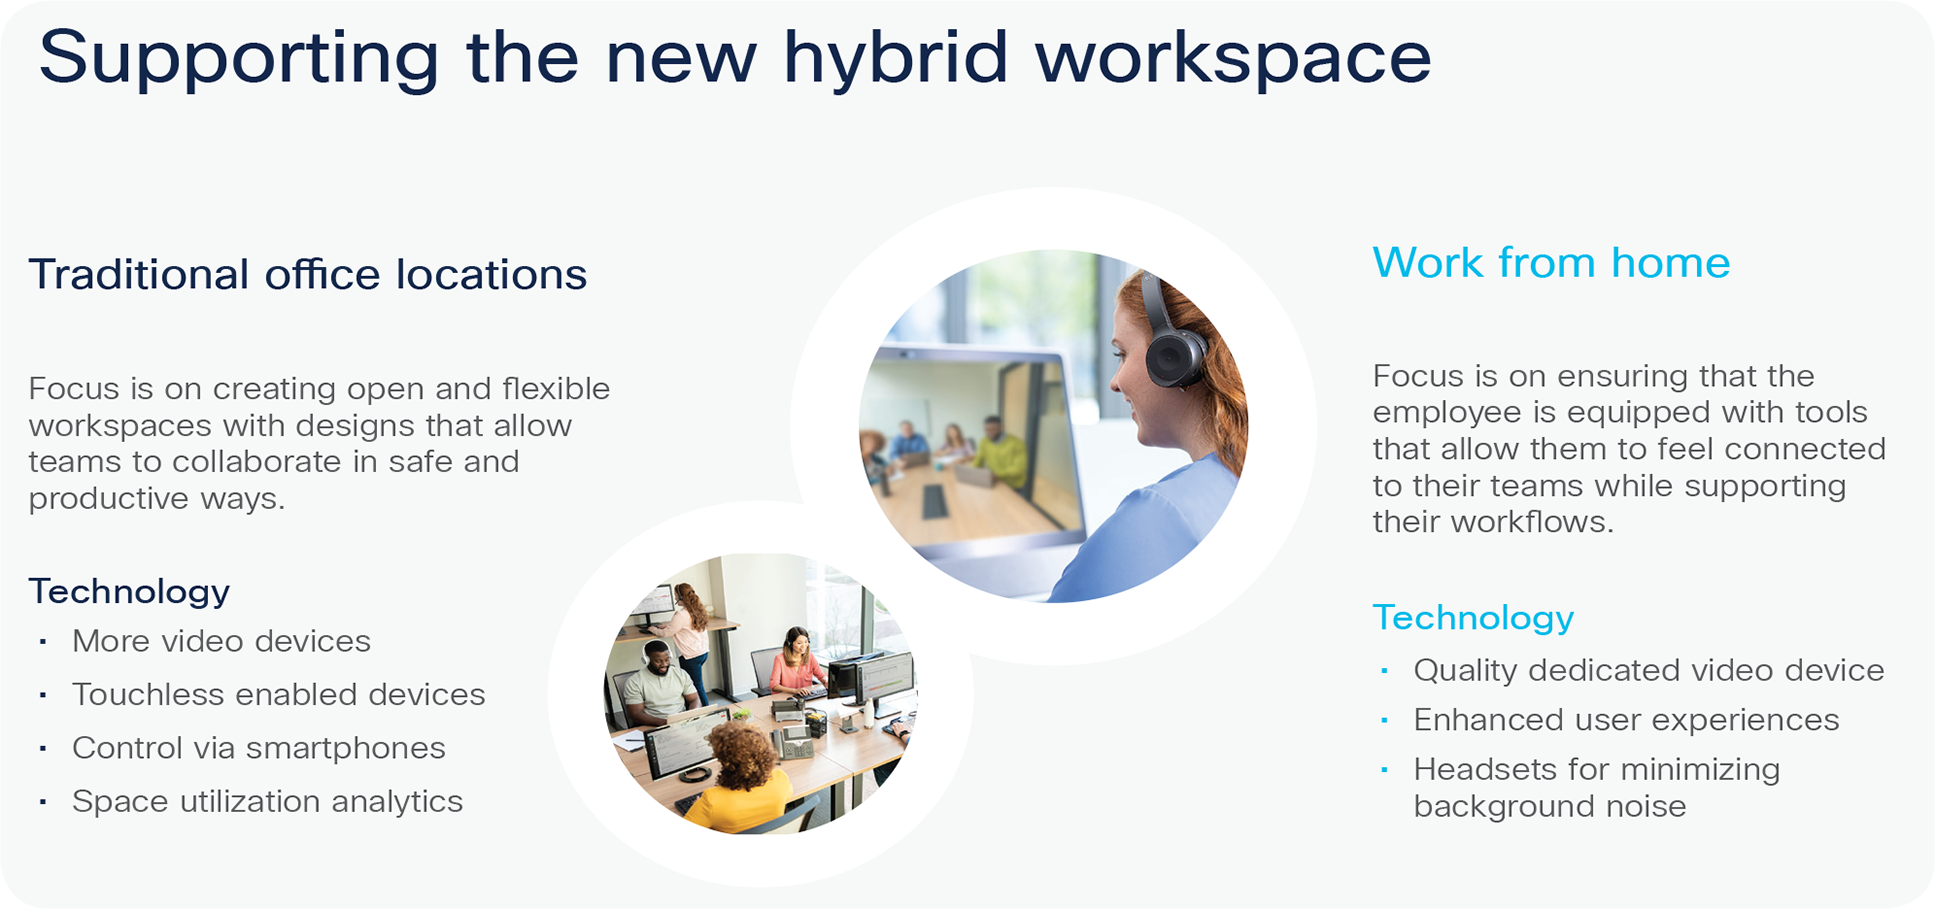 Supporting the new hybrid workspace